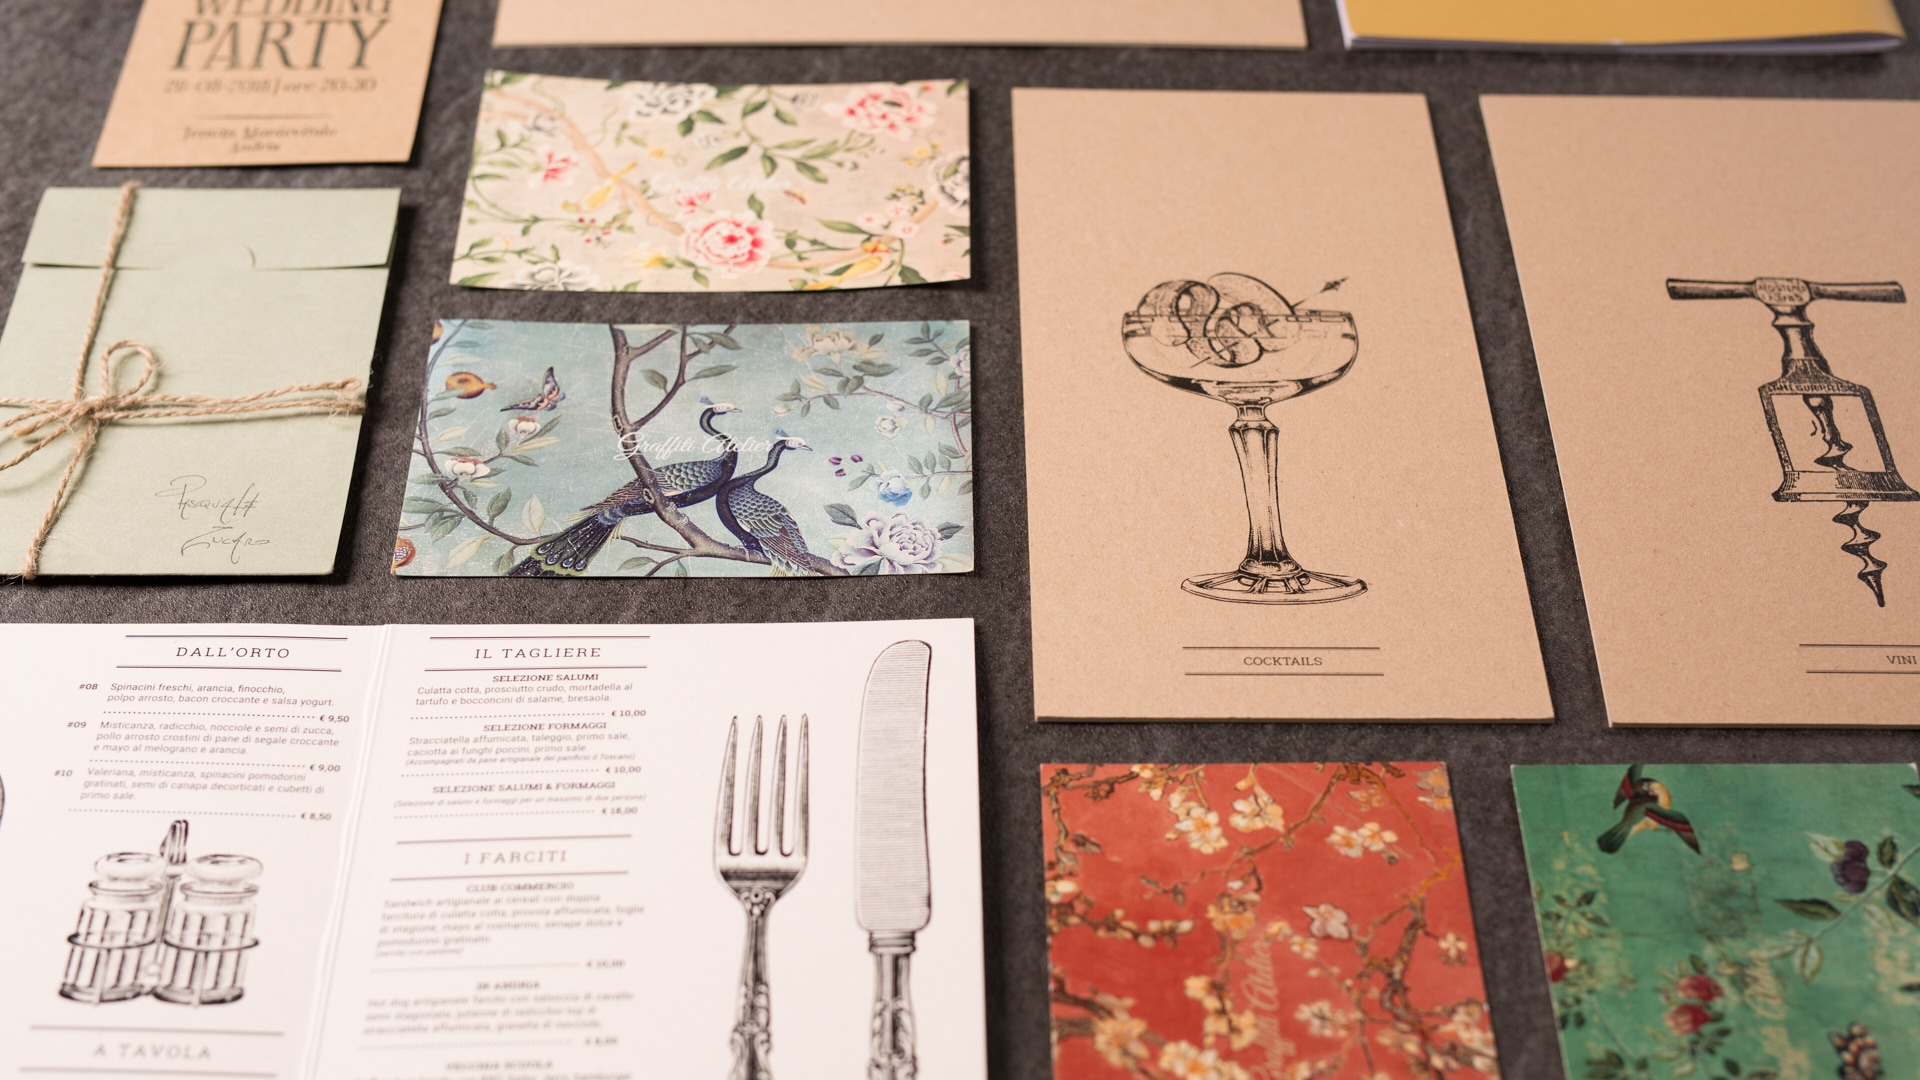 CARDS AND MENUS